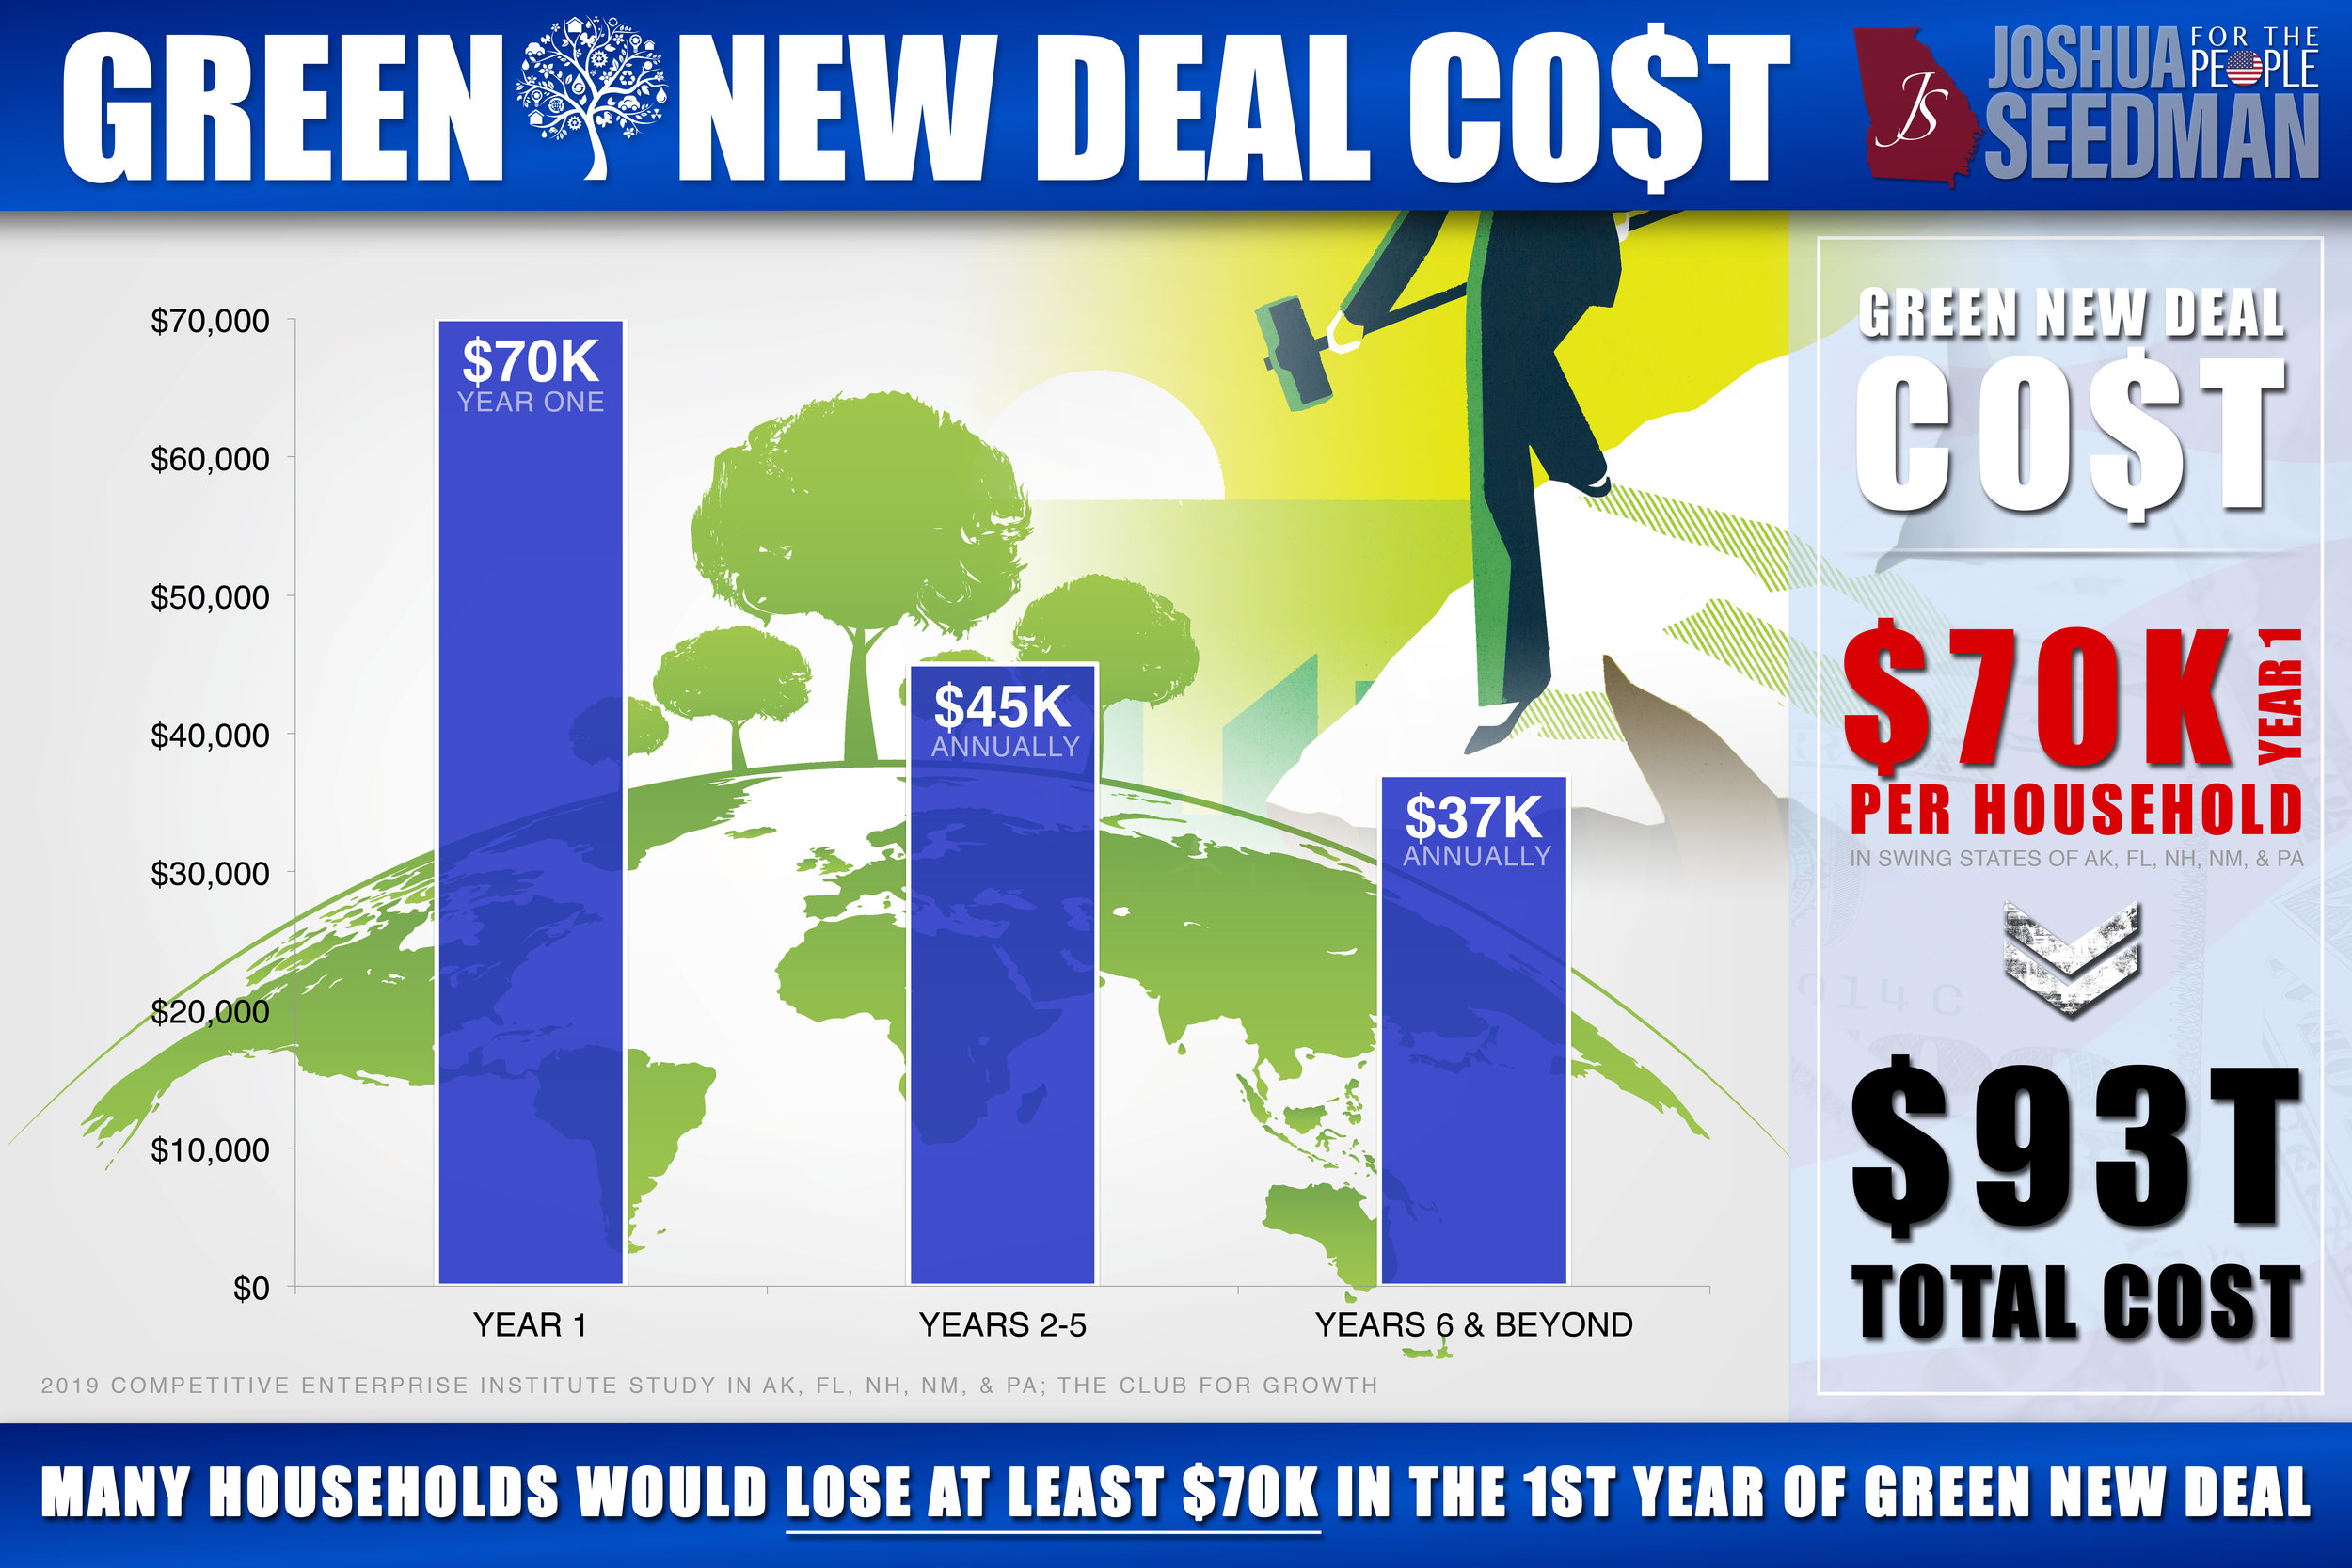 The Cost of the Green New Deal  + Click to Enlarge